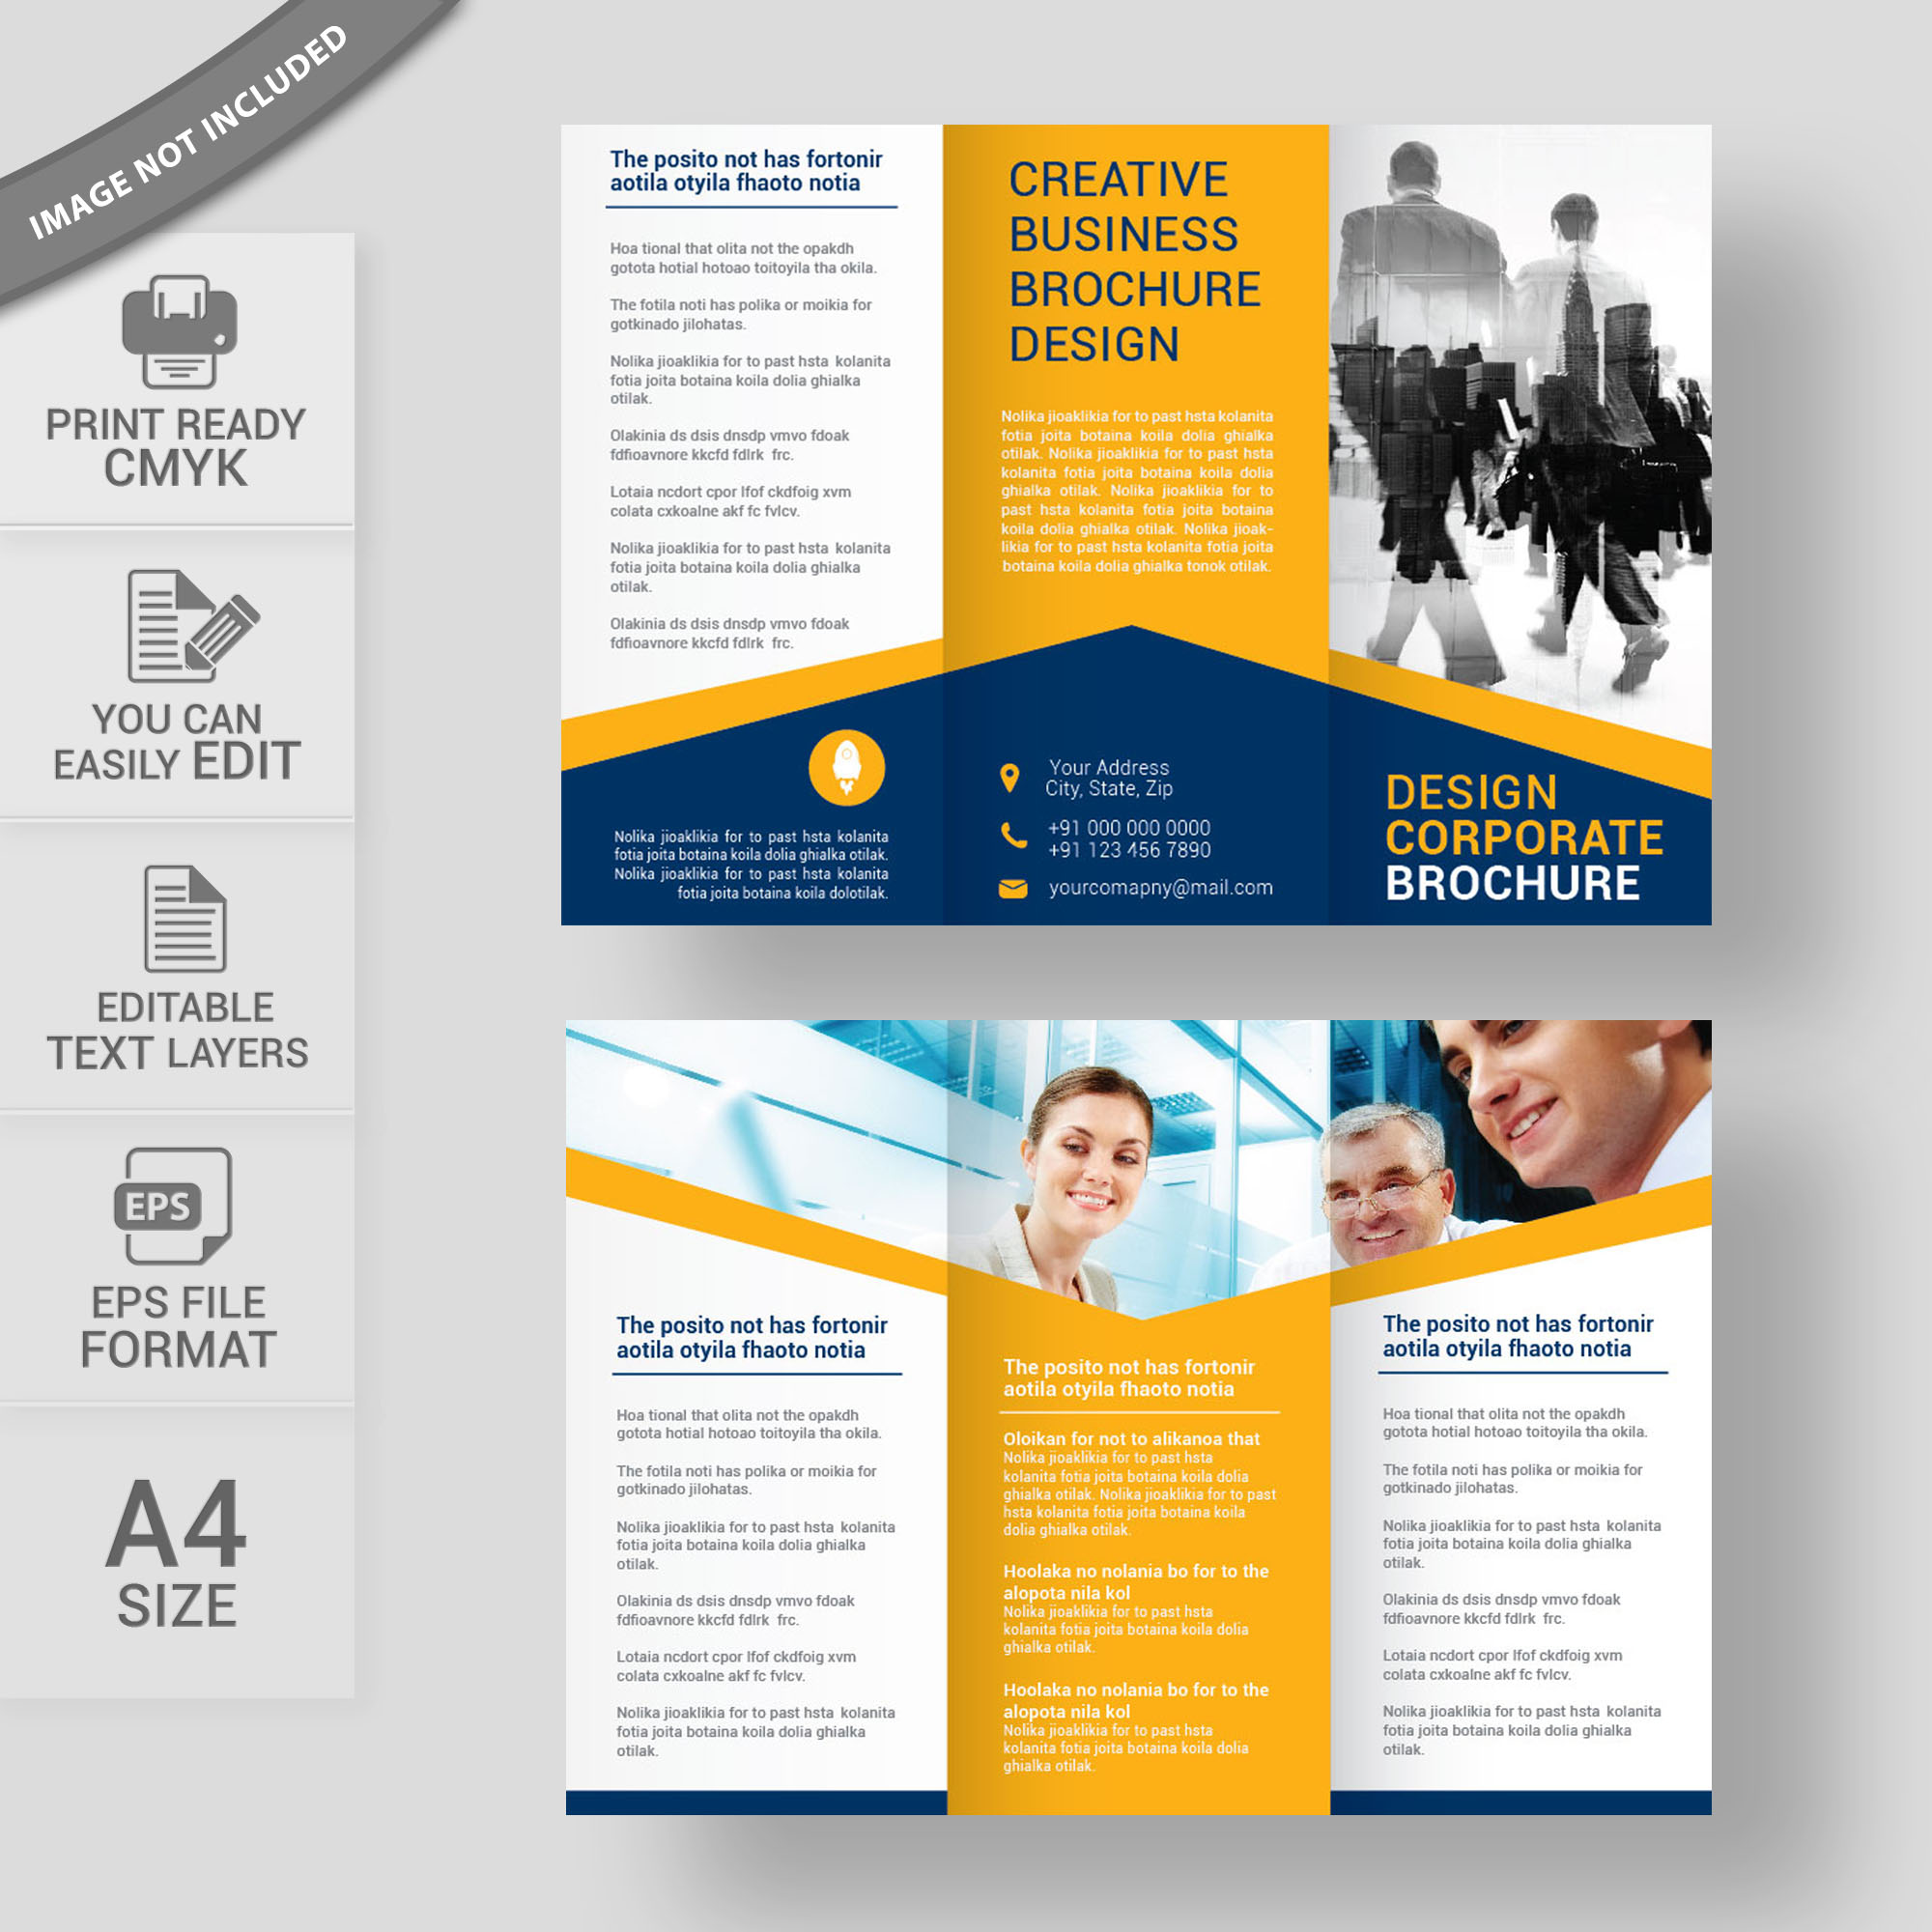 Free Brochure Design Download For Commercial Use Wisxicom - Design brochure template